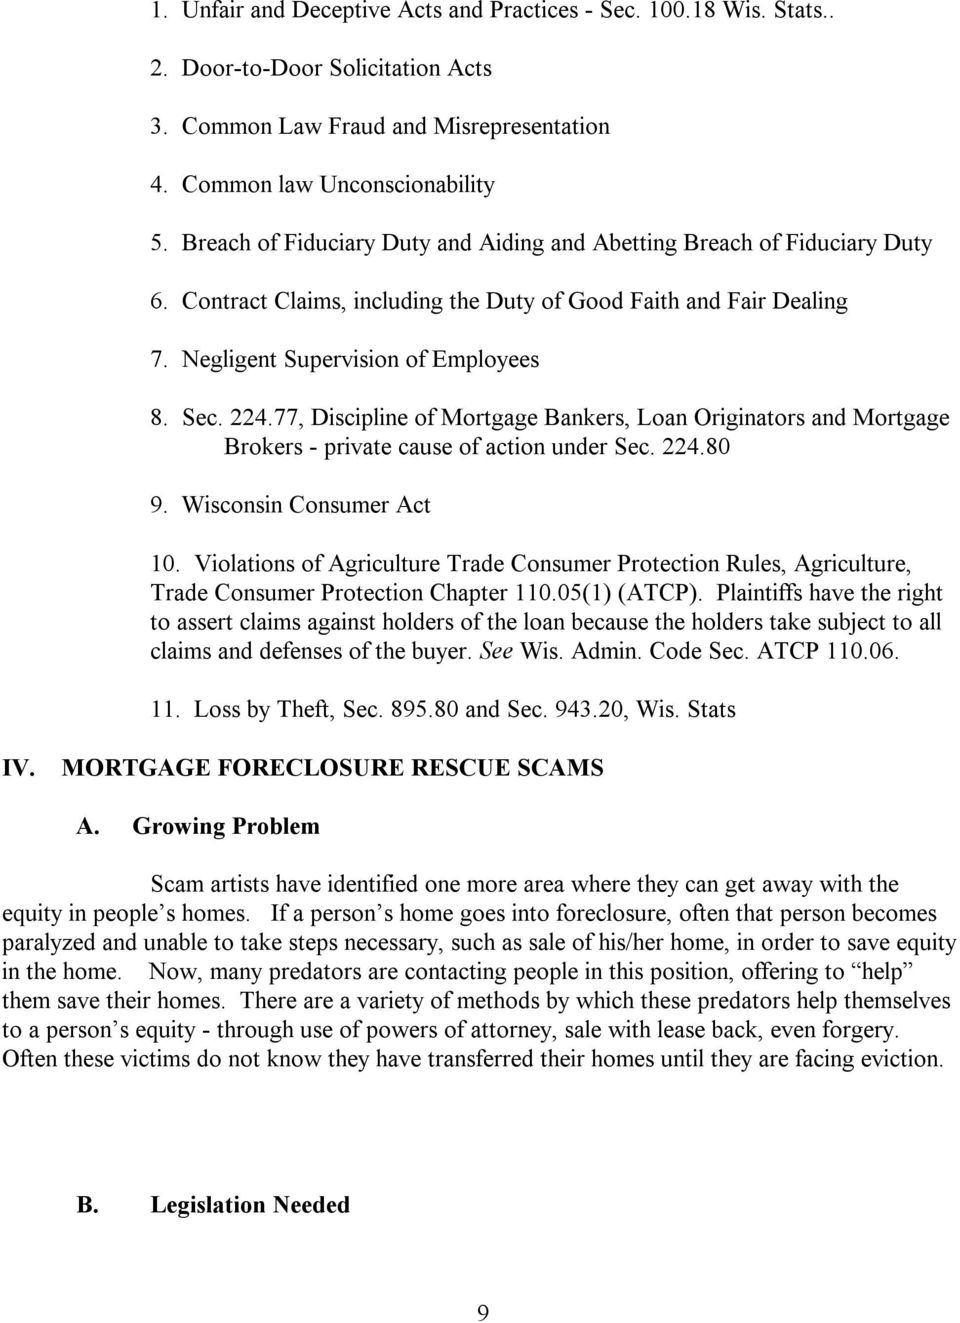 77, Discipline of Mortgage Bankers, Loan Originators and Mortgage Brokers - private cause of action under Sec. 224.80 9. Wisconsin Consumer Act 10.